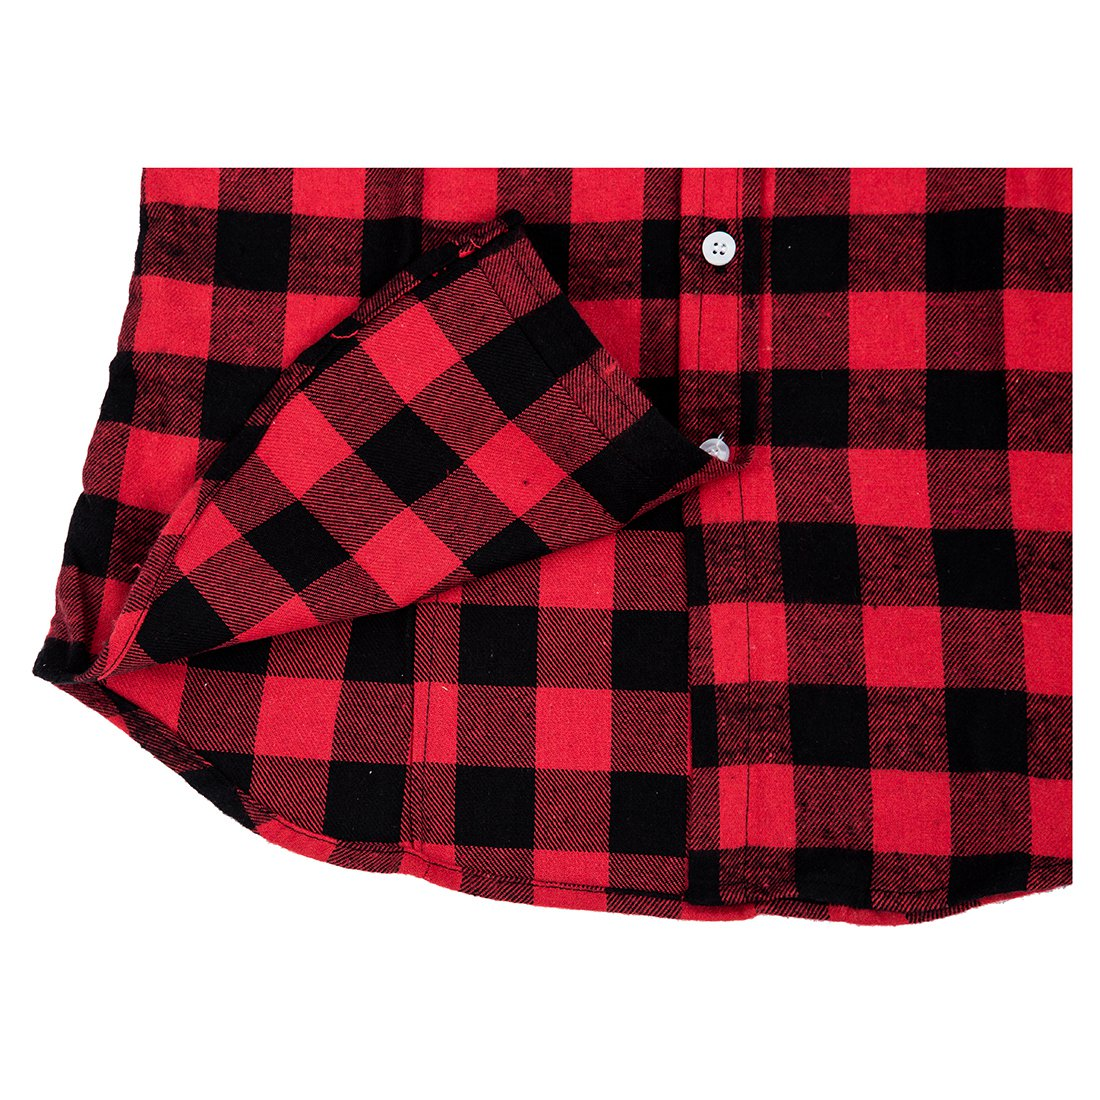 Shop for black and red flannel online at Target. Free shipping on purchases over $35 and save 5% every day with your Target REDcard.